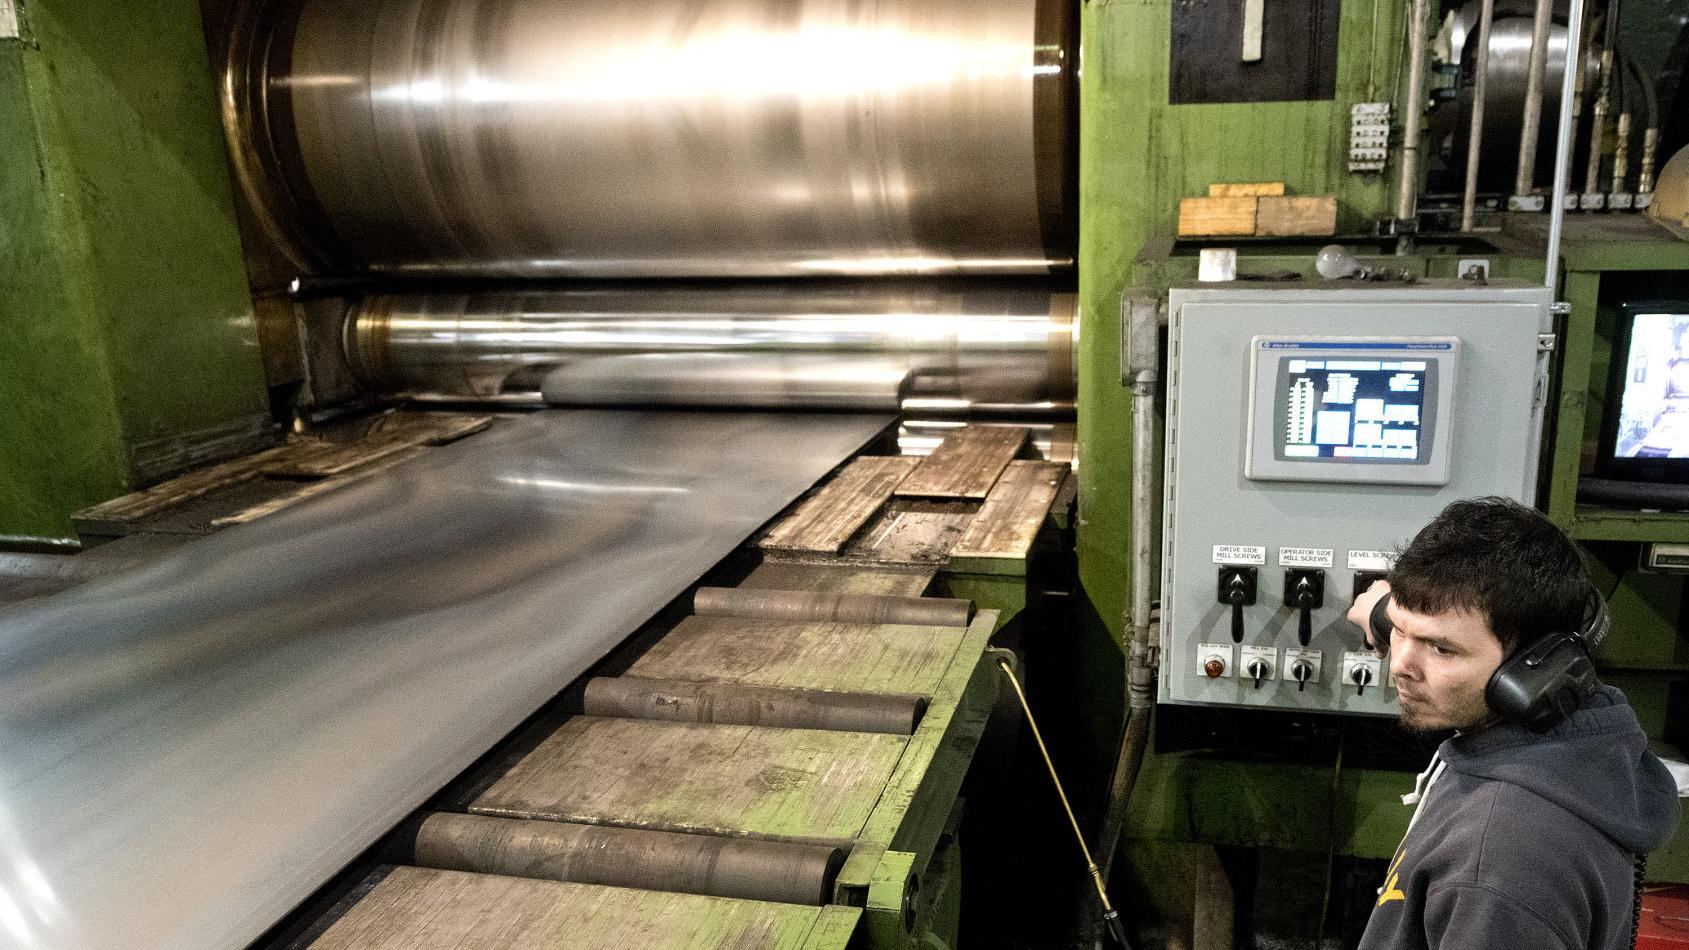 Trump's tariffs on foreign steel, aluminum feared costly for some Siouxland manufacturers